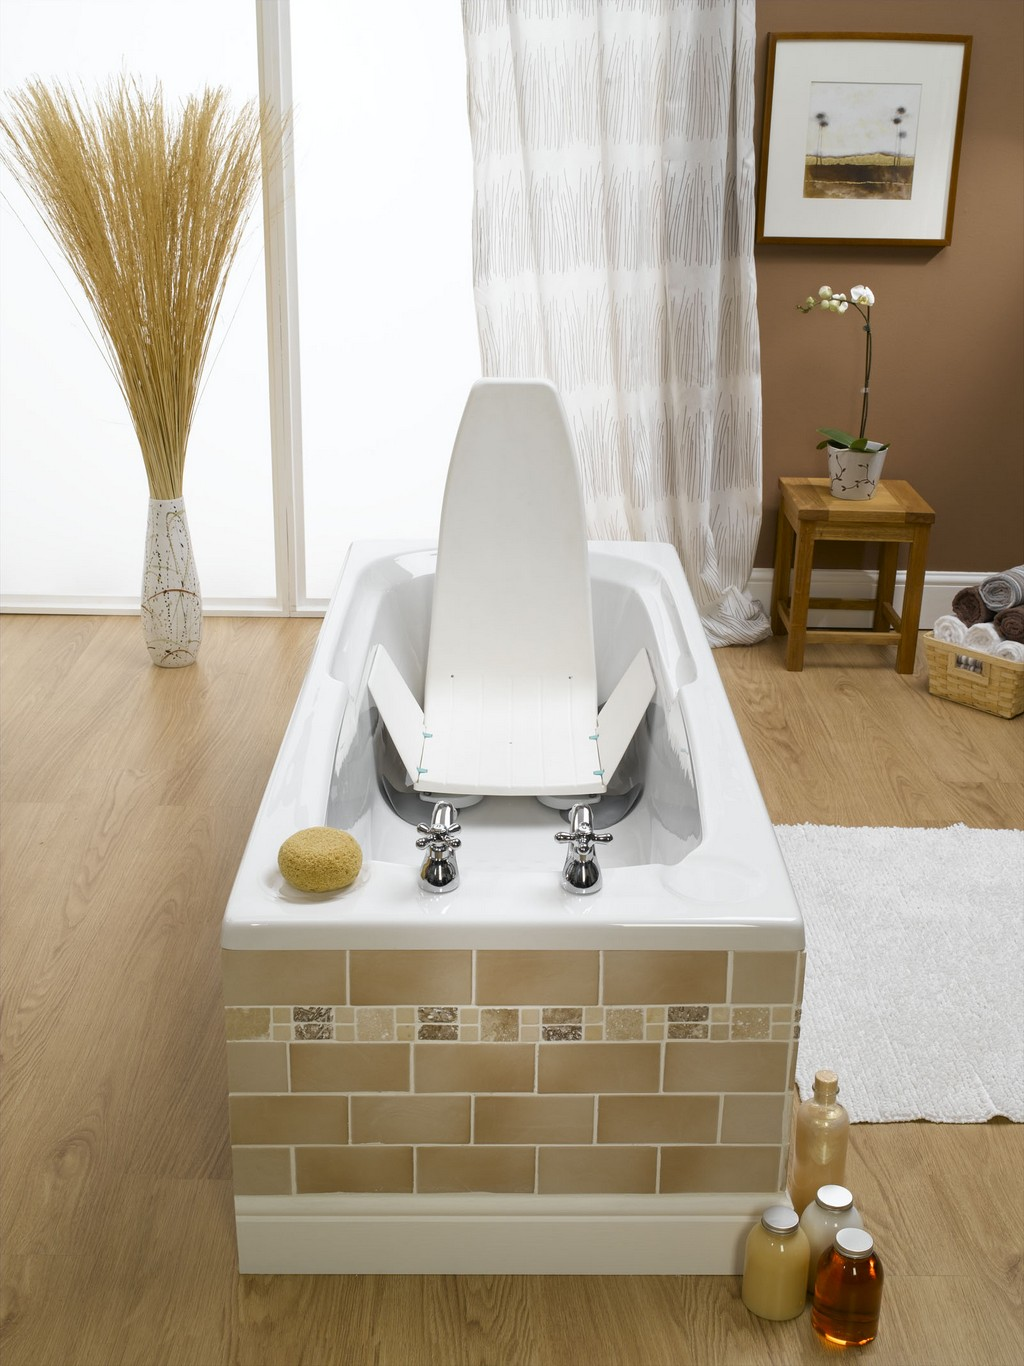 slim n lift at bed bath and beyond, ameriglide bath lift, hoyer lift bath sling, sonaris reclining bath lift